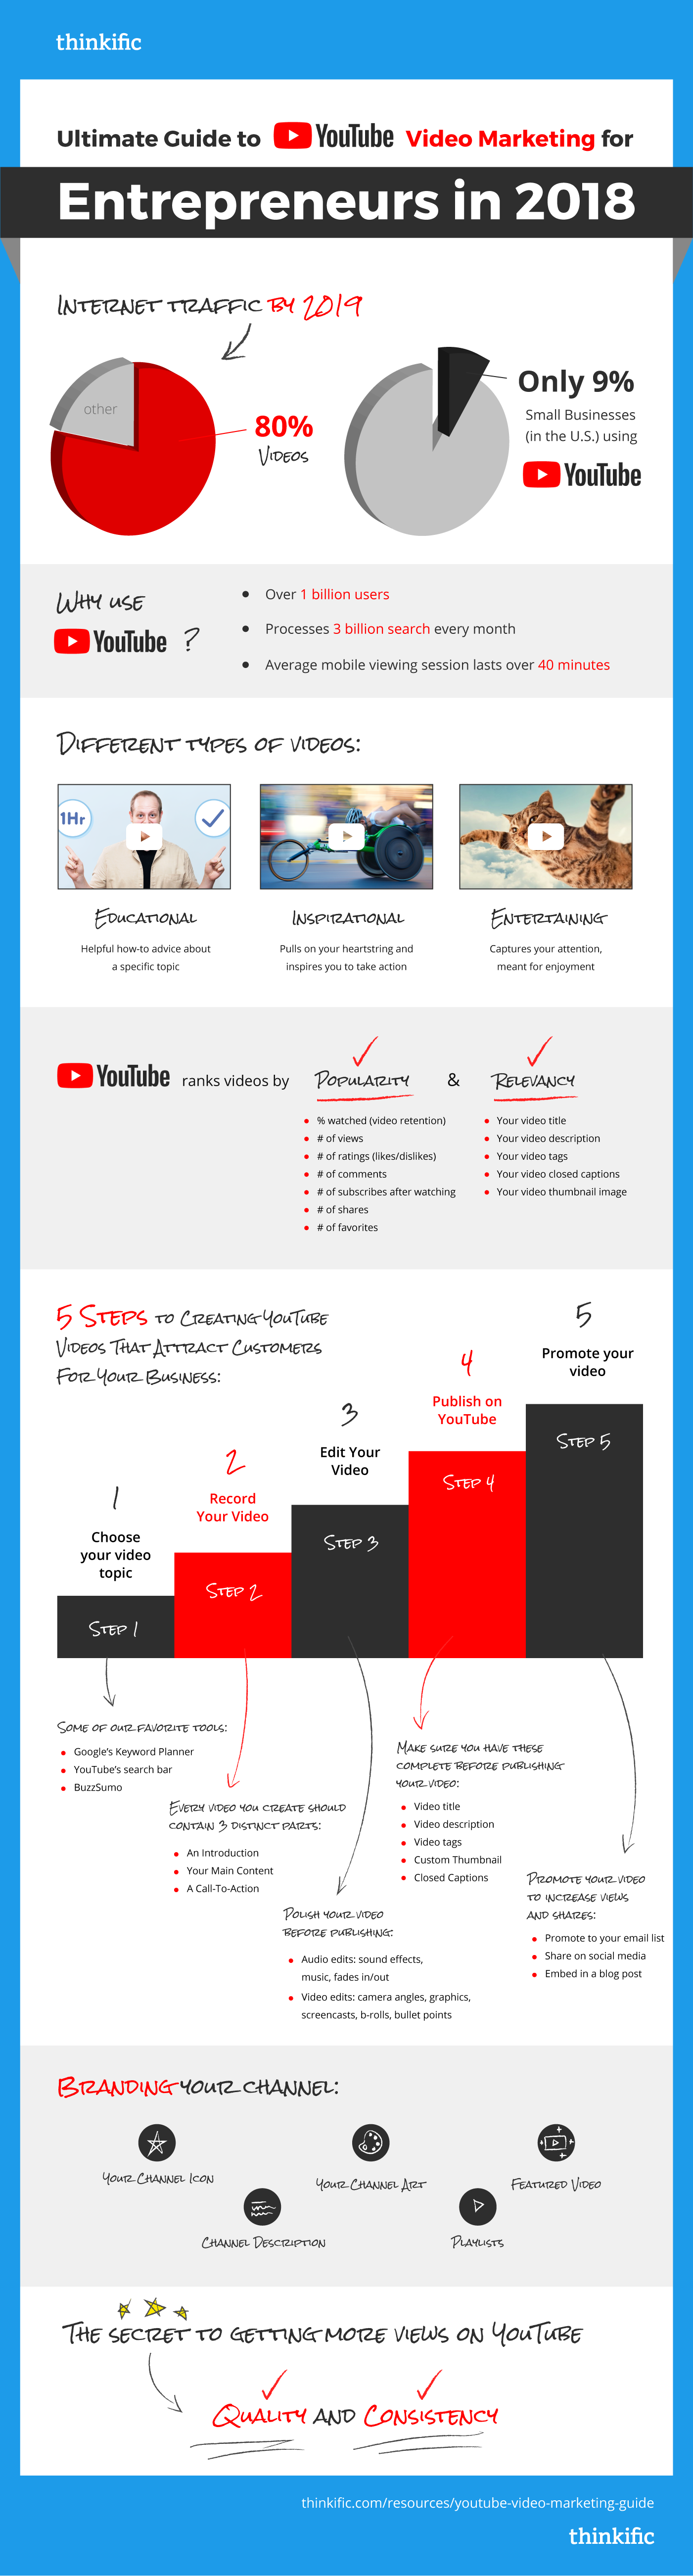 The Ultimate YouTube Video Marketing Guide for Entrepreneurs | How to get more views on YouTube